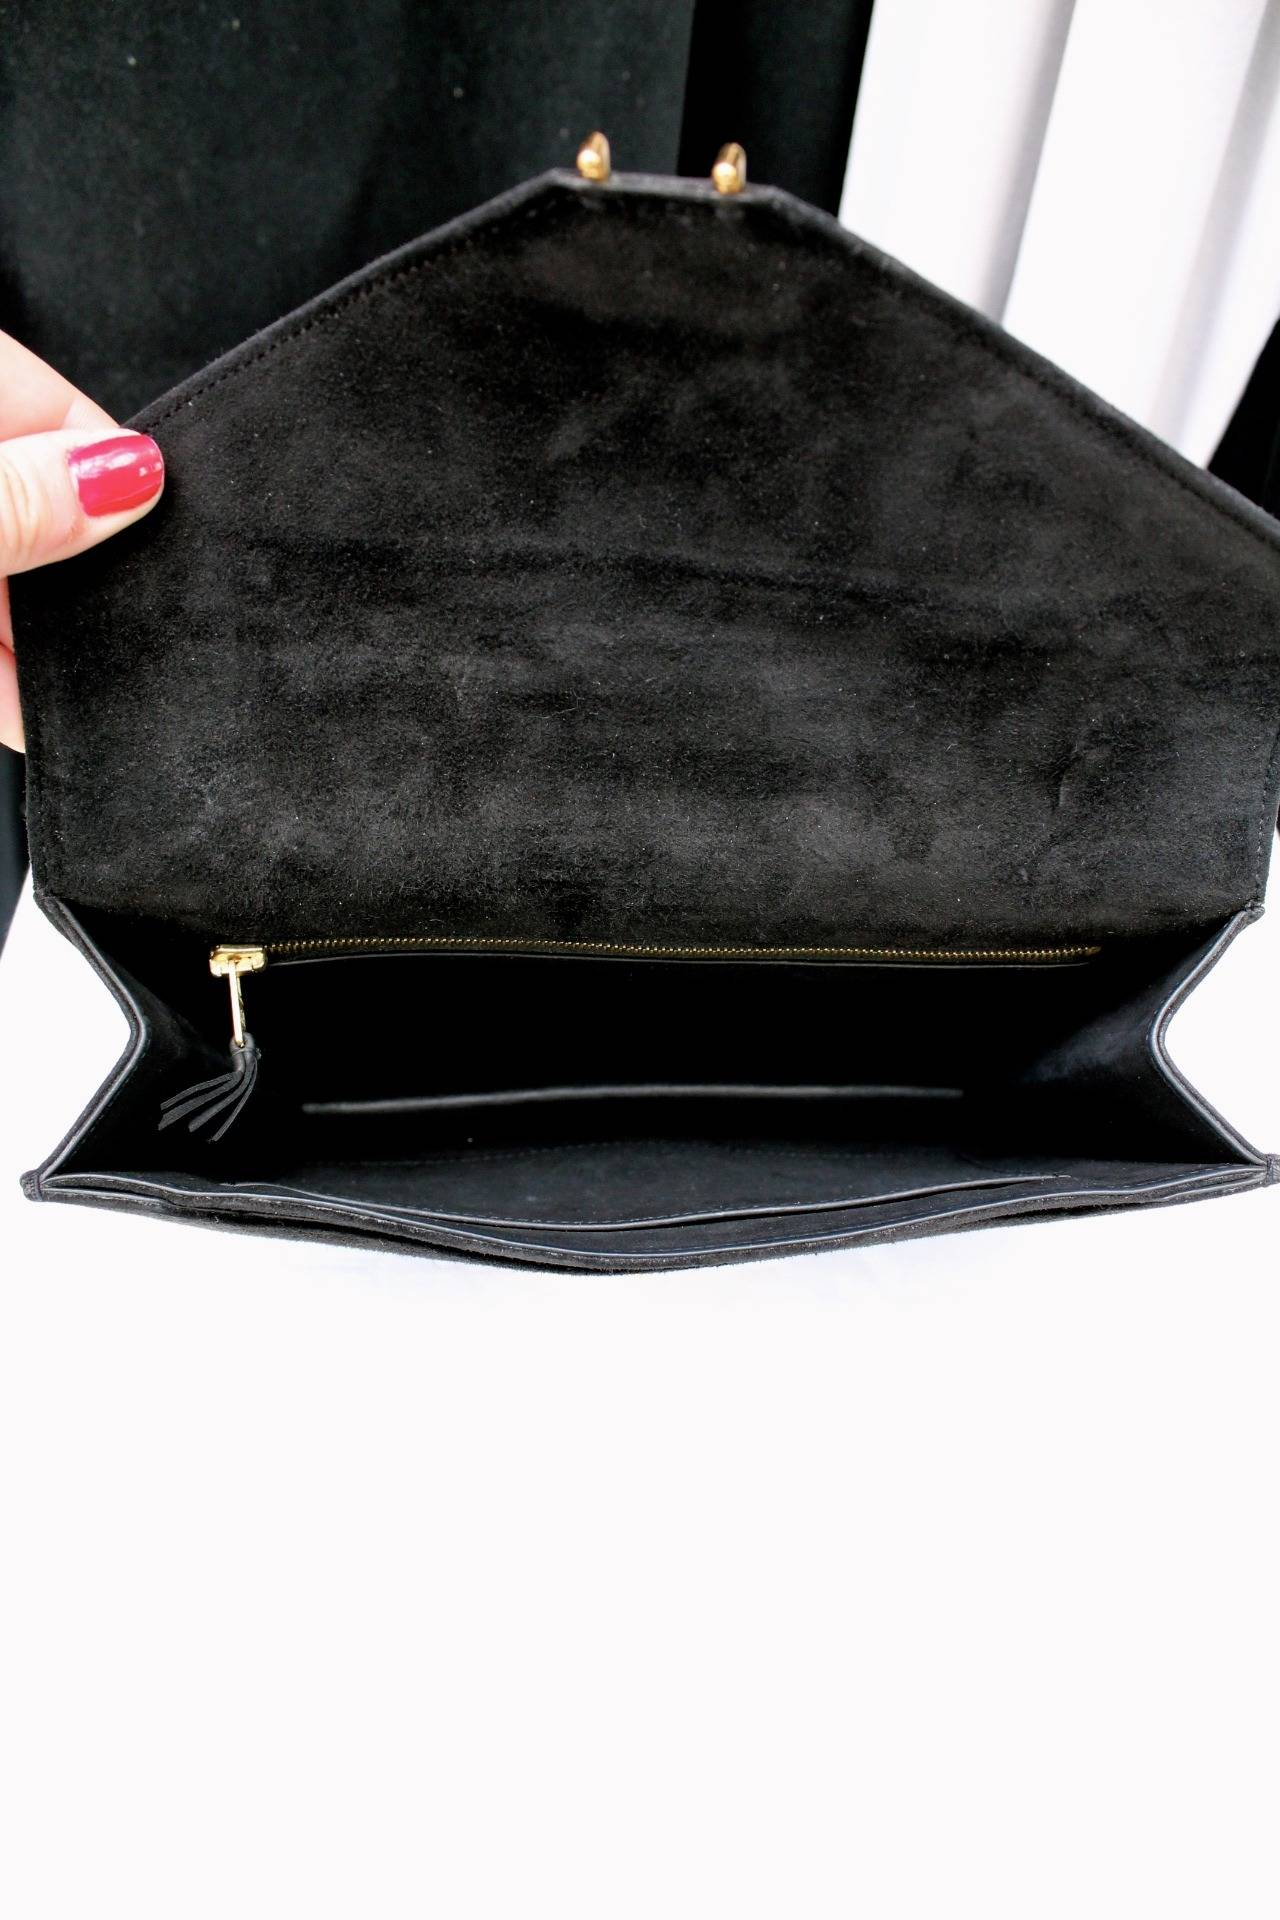 fake birkin hermes - Hermes Black Suede Clutch at 1stdibs